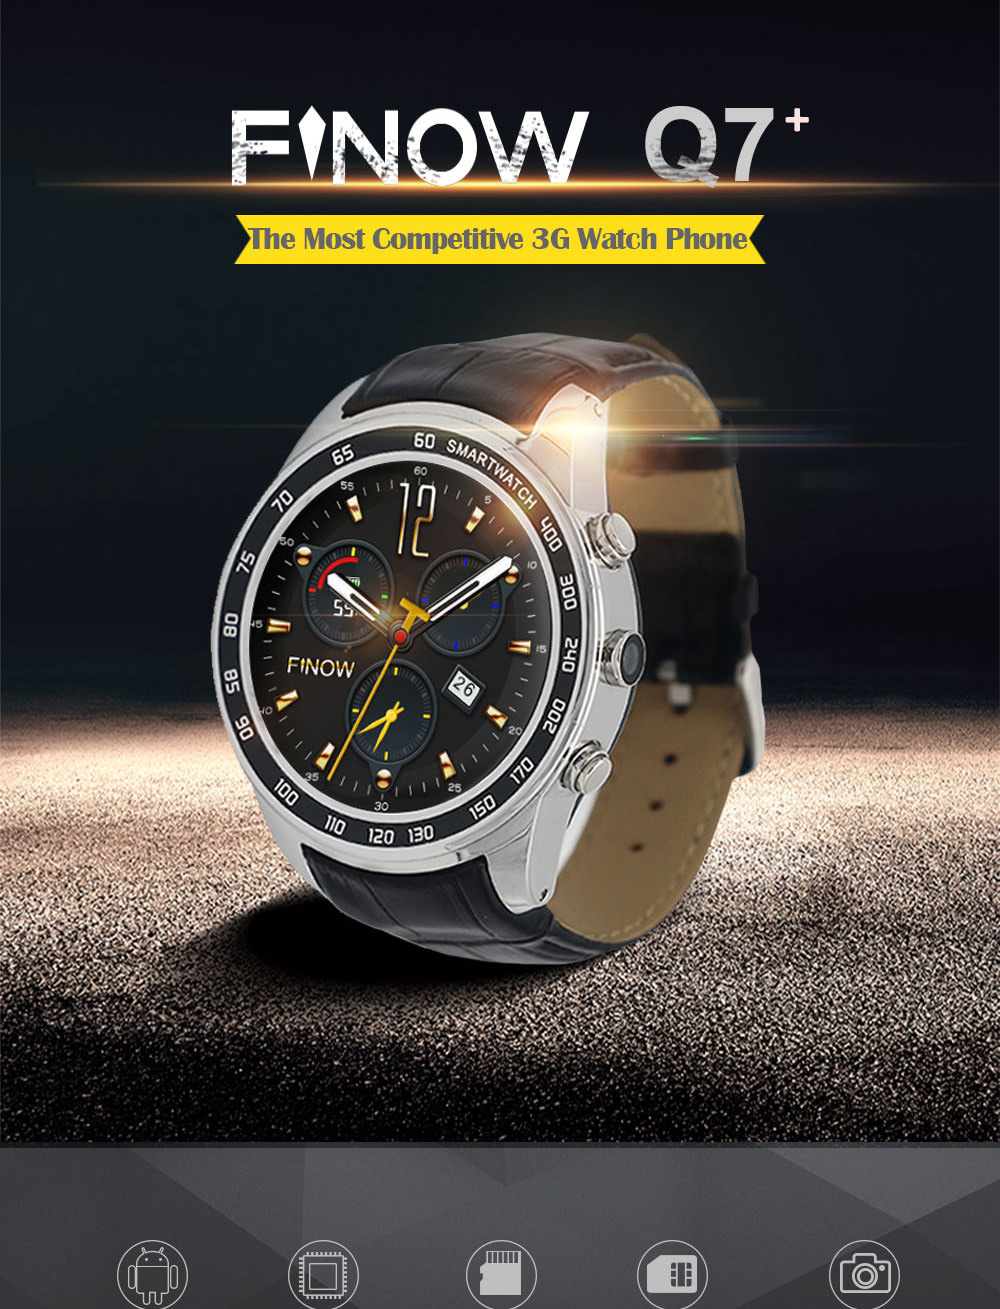 FINOW Q7 Plus 3G Smartwatch